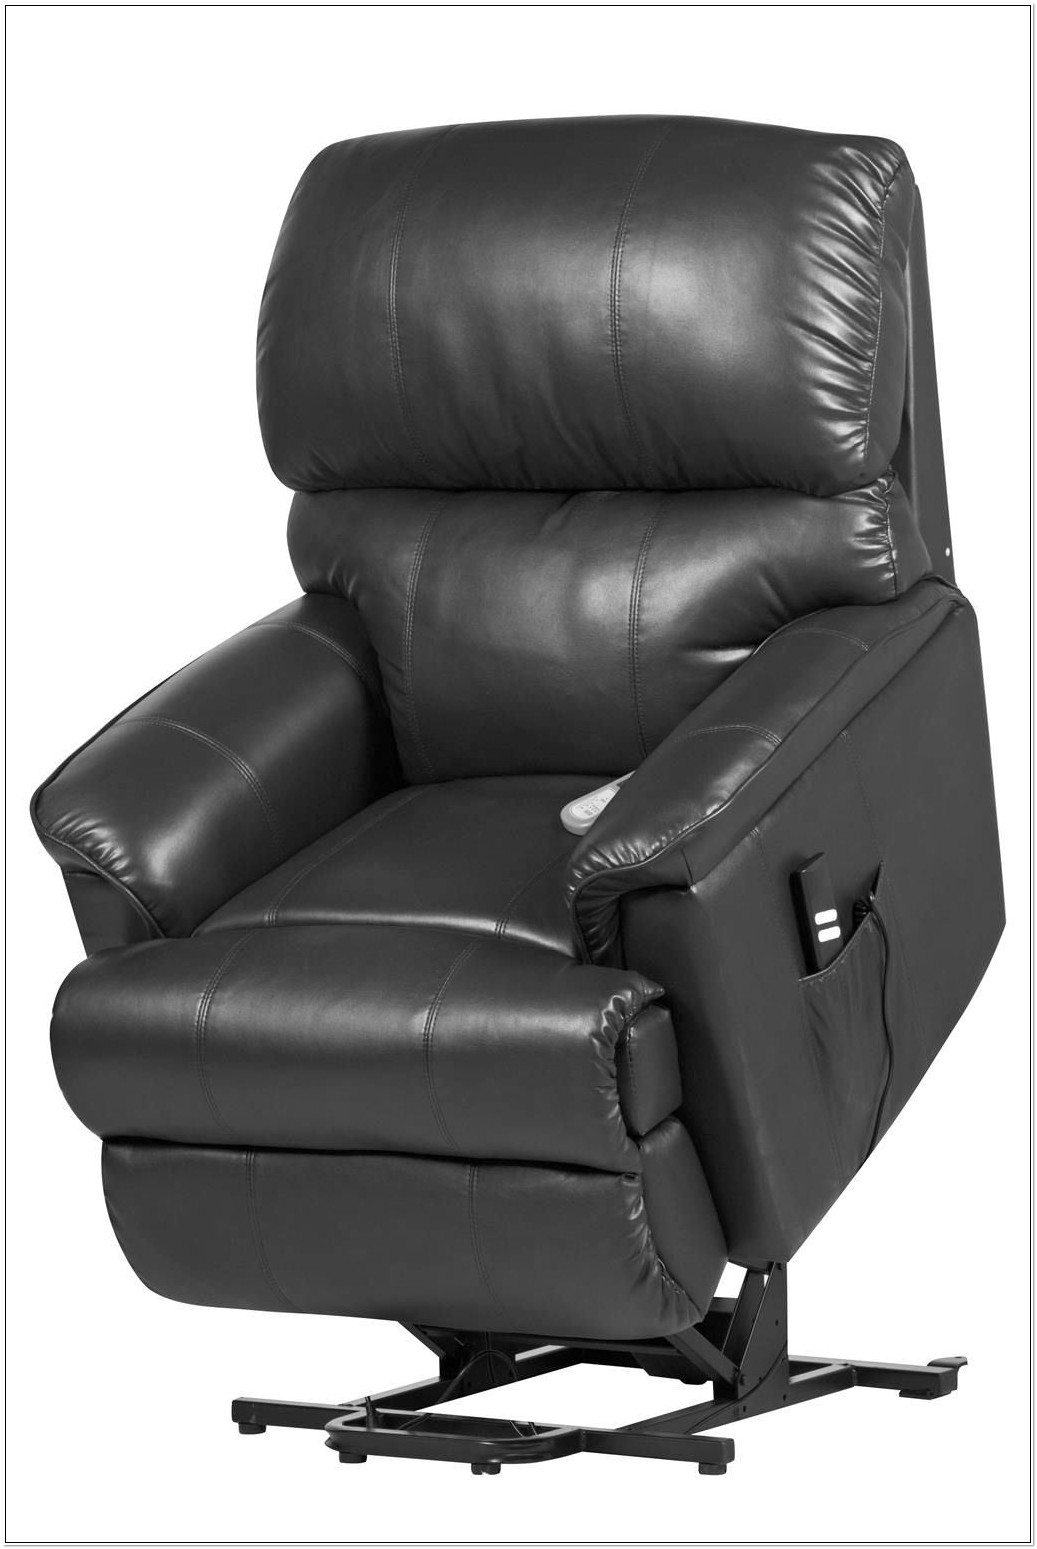 Riser Recliner Chairs With Heat And Massage